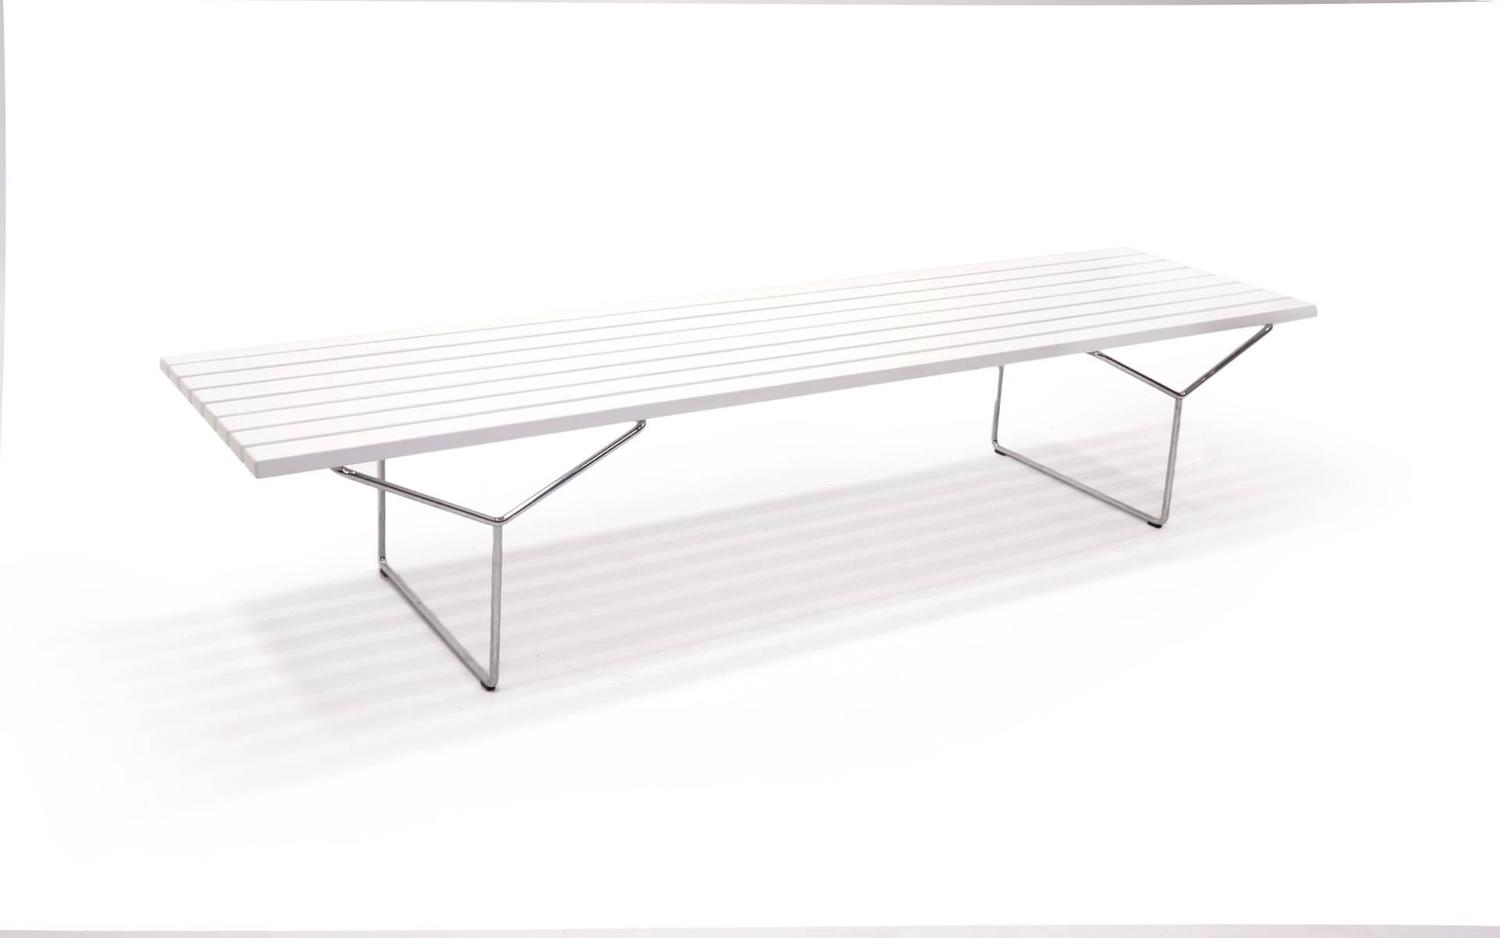 Original white lacquered ash harry bertoia bench or table for knoll at 1stdibs - Bertoia coffee table ...